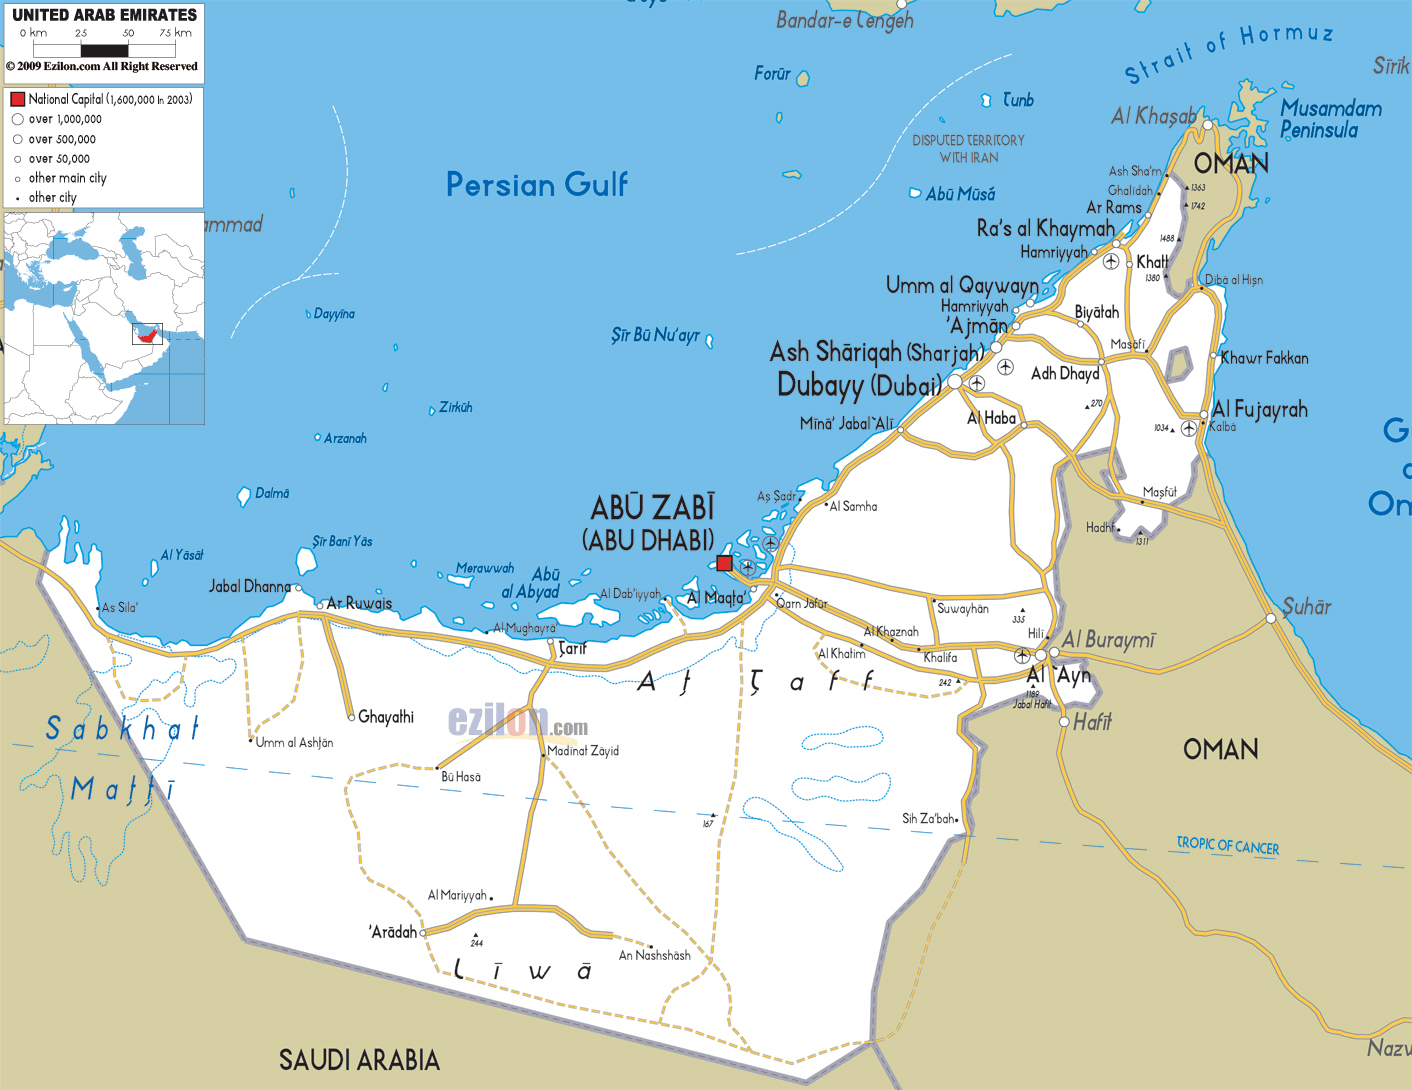 detailed road and administrative map of uae